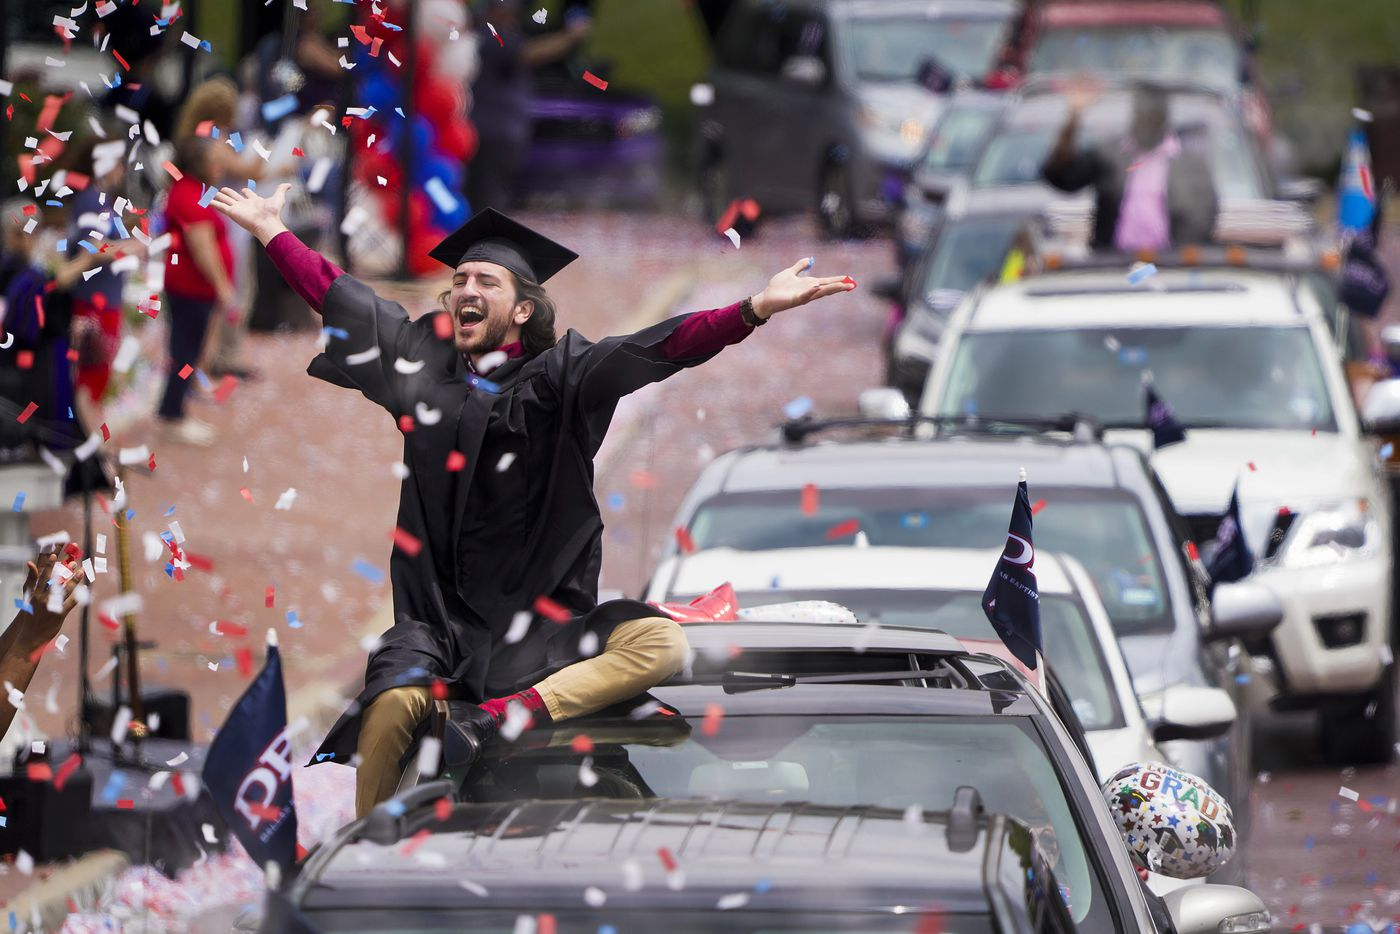 Graduate William Santini celebrates as confetti falls during a commencement car parade at Dallas Baptist University on Friday, May 15, 2020, in Dallas.  DBU graduates moved by car through the campus and had their names called as they passed Pilgrim Chapel before proceeding onward to collect their diplomas. Approximately 350 graduates passed through the campus in a parade of approximately 600 cars.